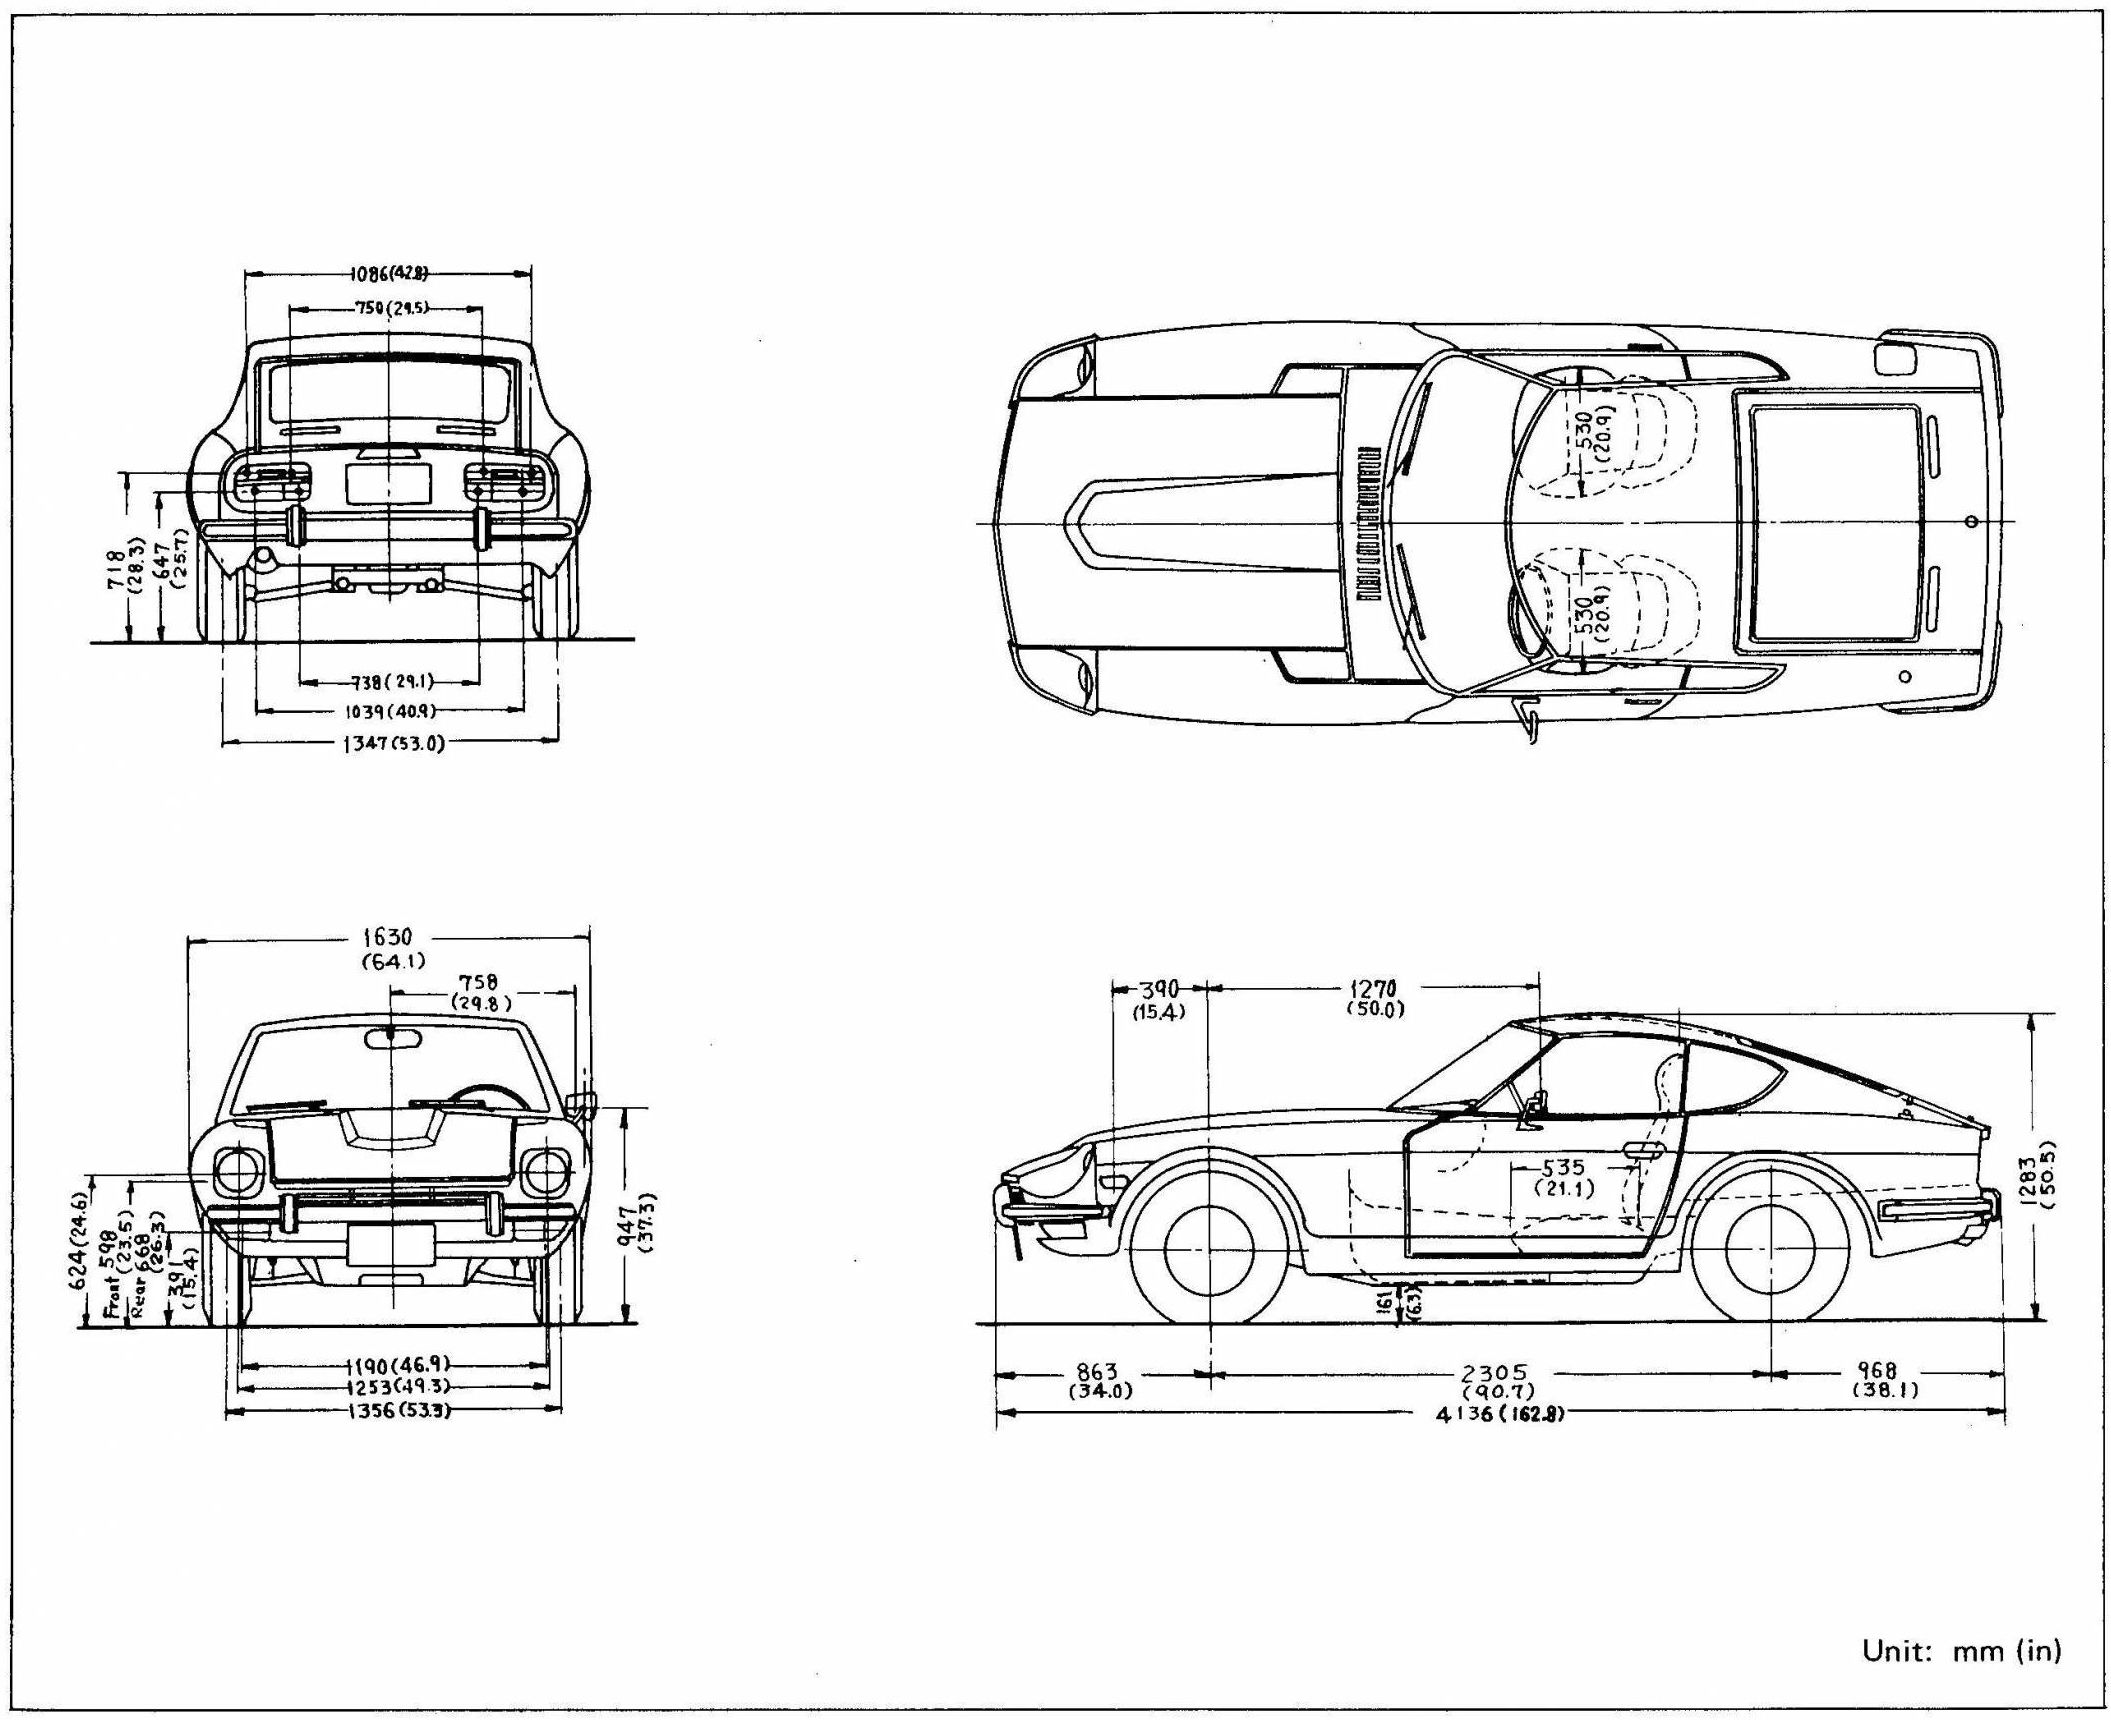 Datsun 280Z blueprint